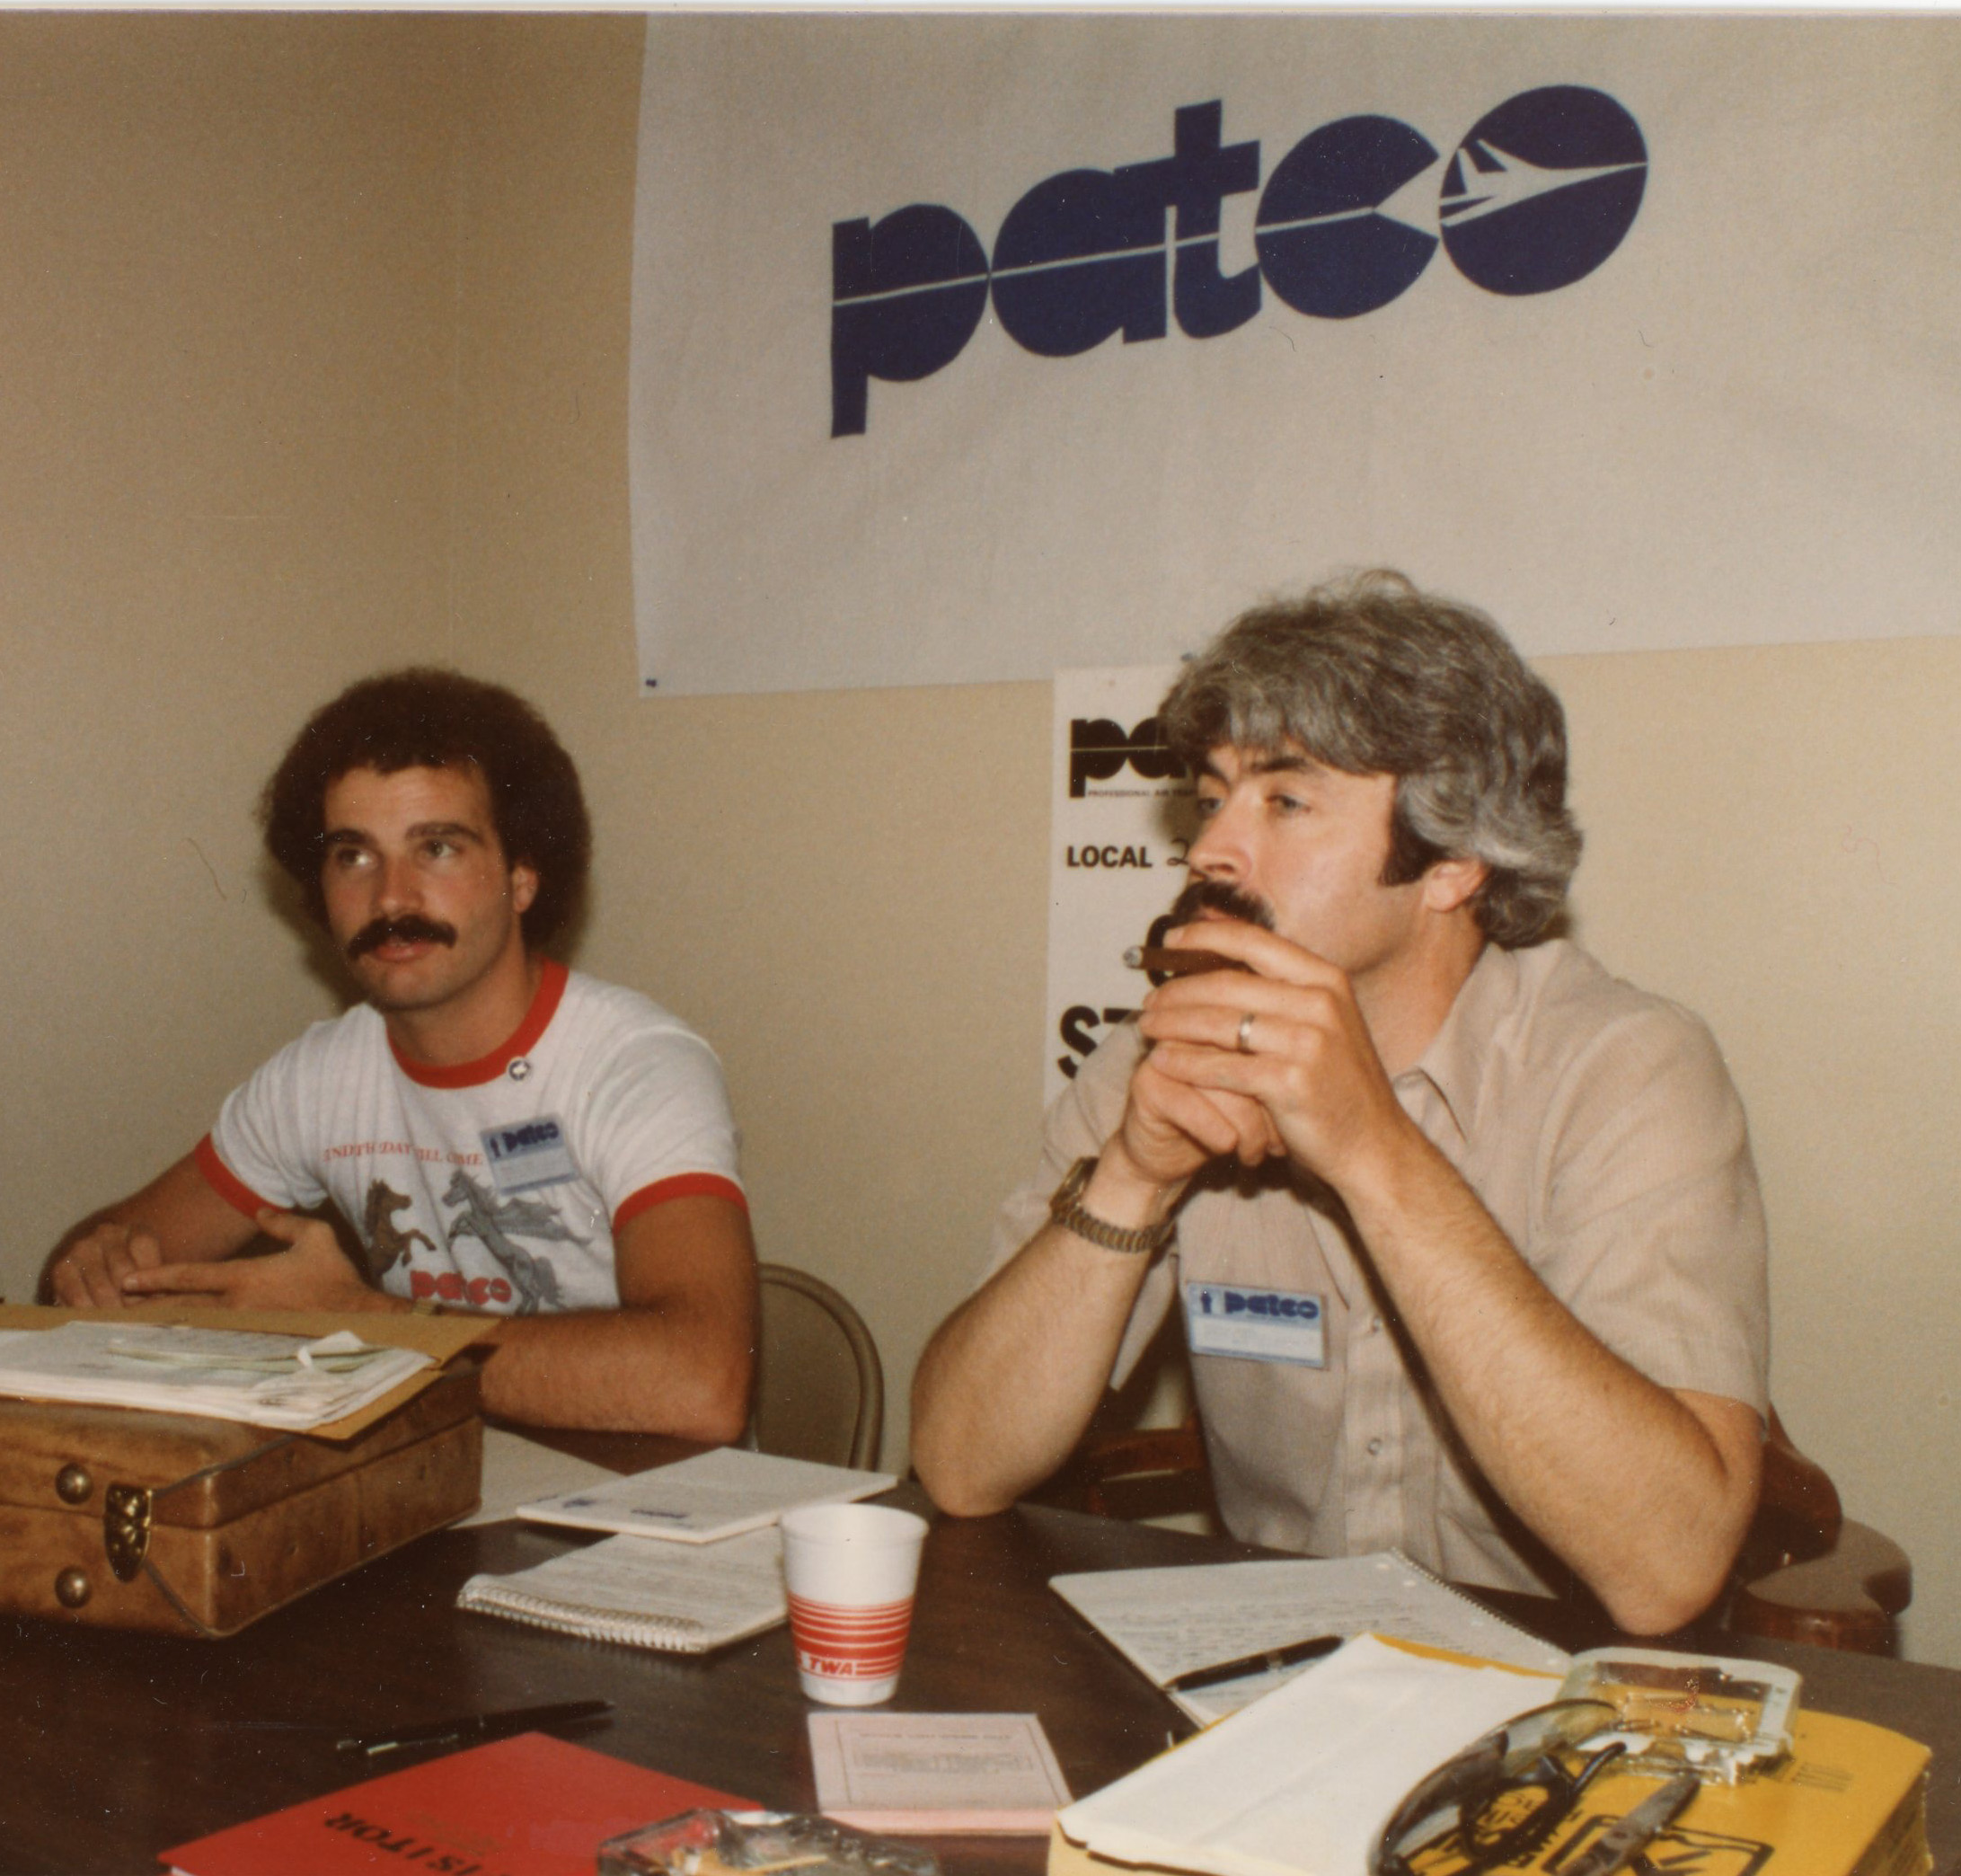 Image of PATCO representatives